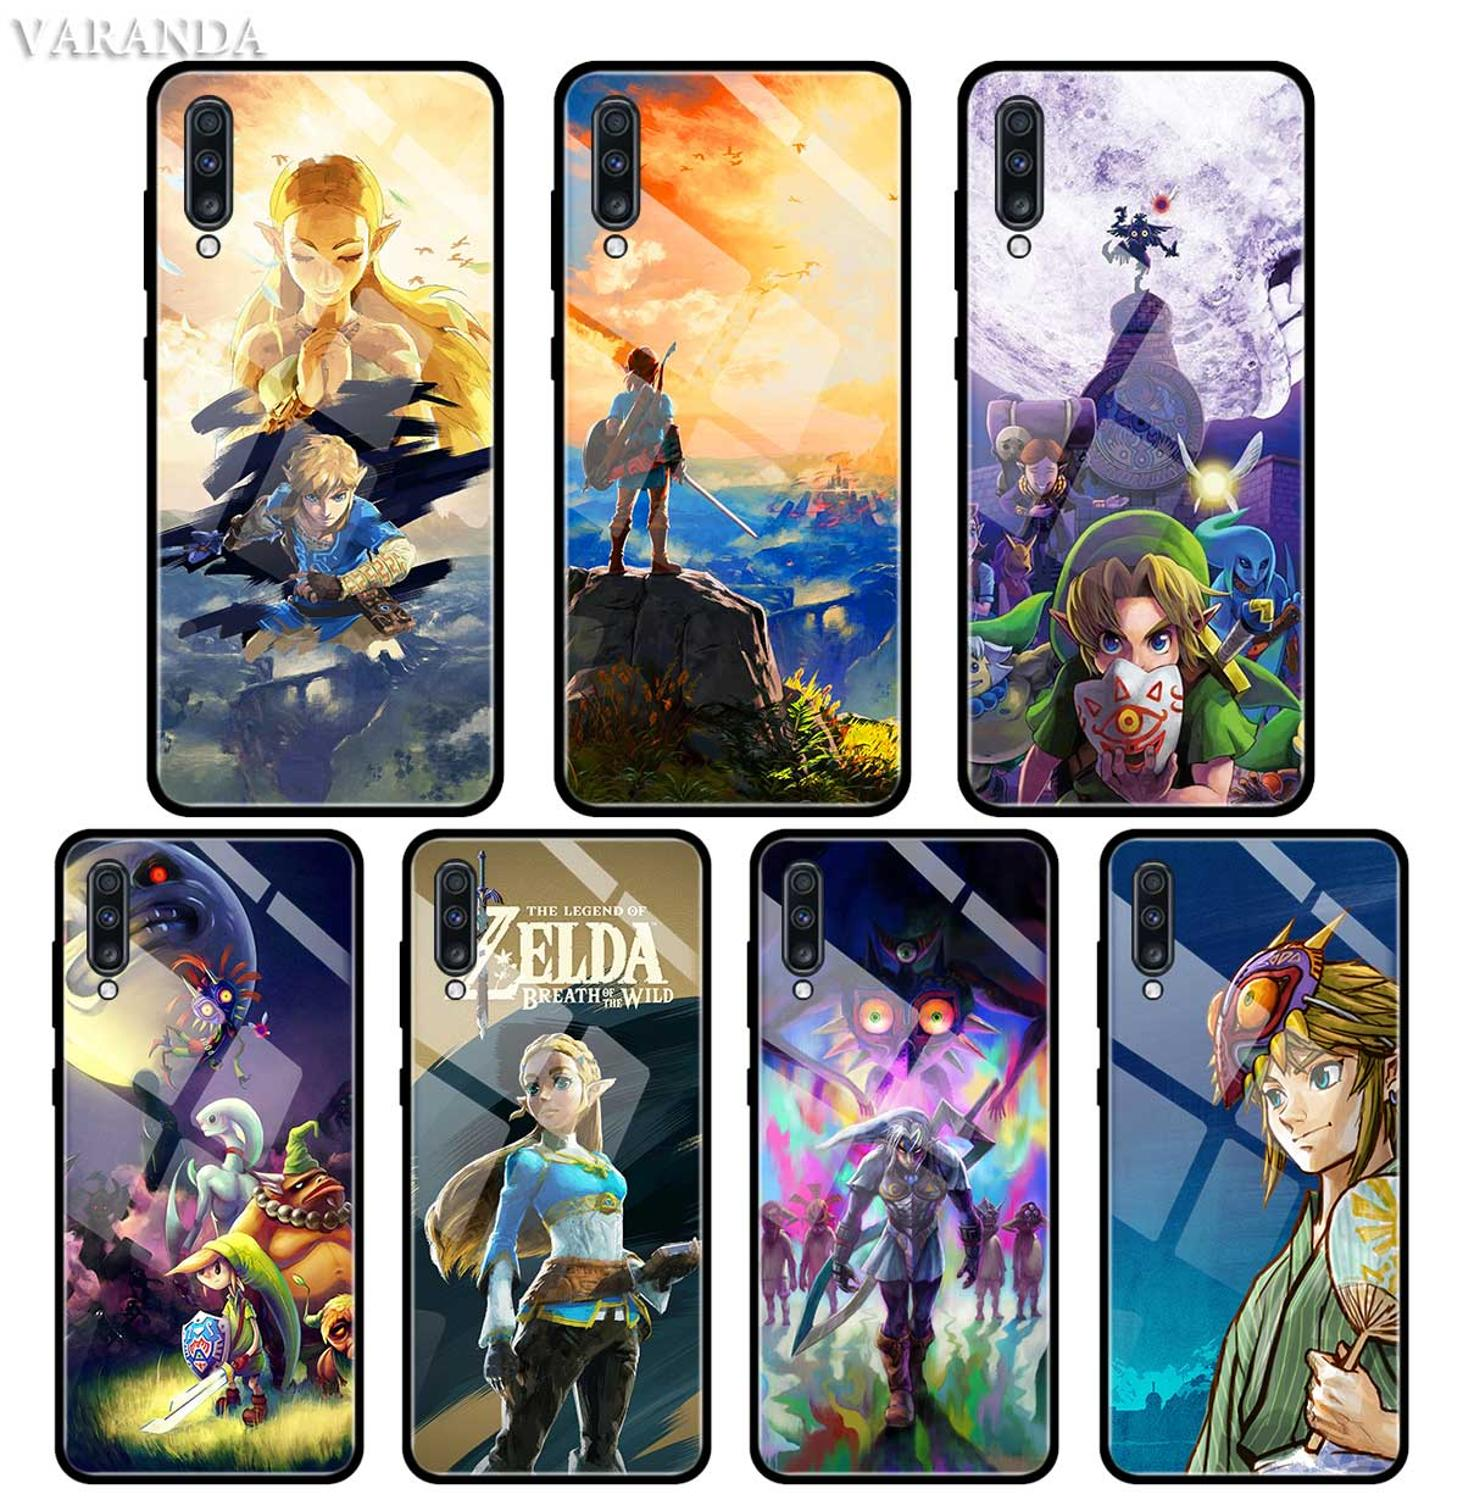 Legend of Zelda <font><b>Case</b></font> For <font><b>Samsung</b></font> A50 A40 <font><b>A70</b></font> A71 A51 A30 A10 A10S A20S M30S J4 J6 Plus <font><b>Tempered</b></font> <font><b>Glass</b></font> Phone Cover image